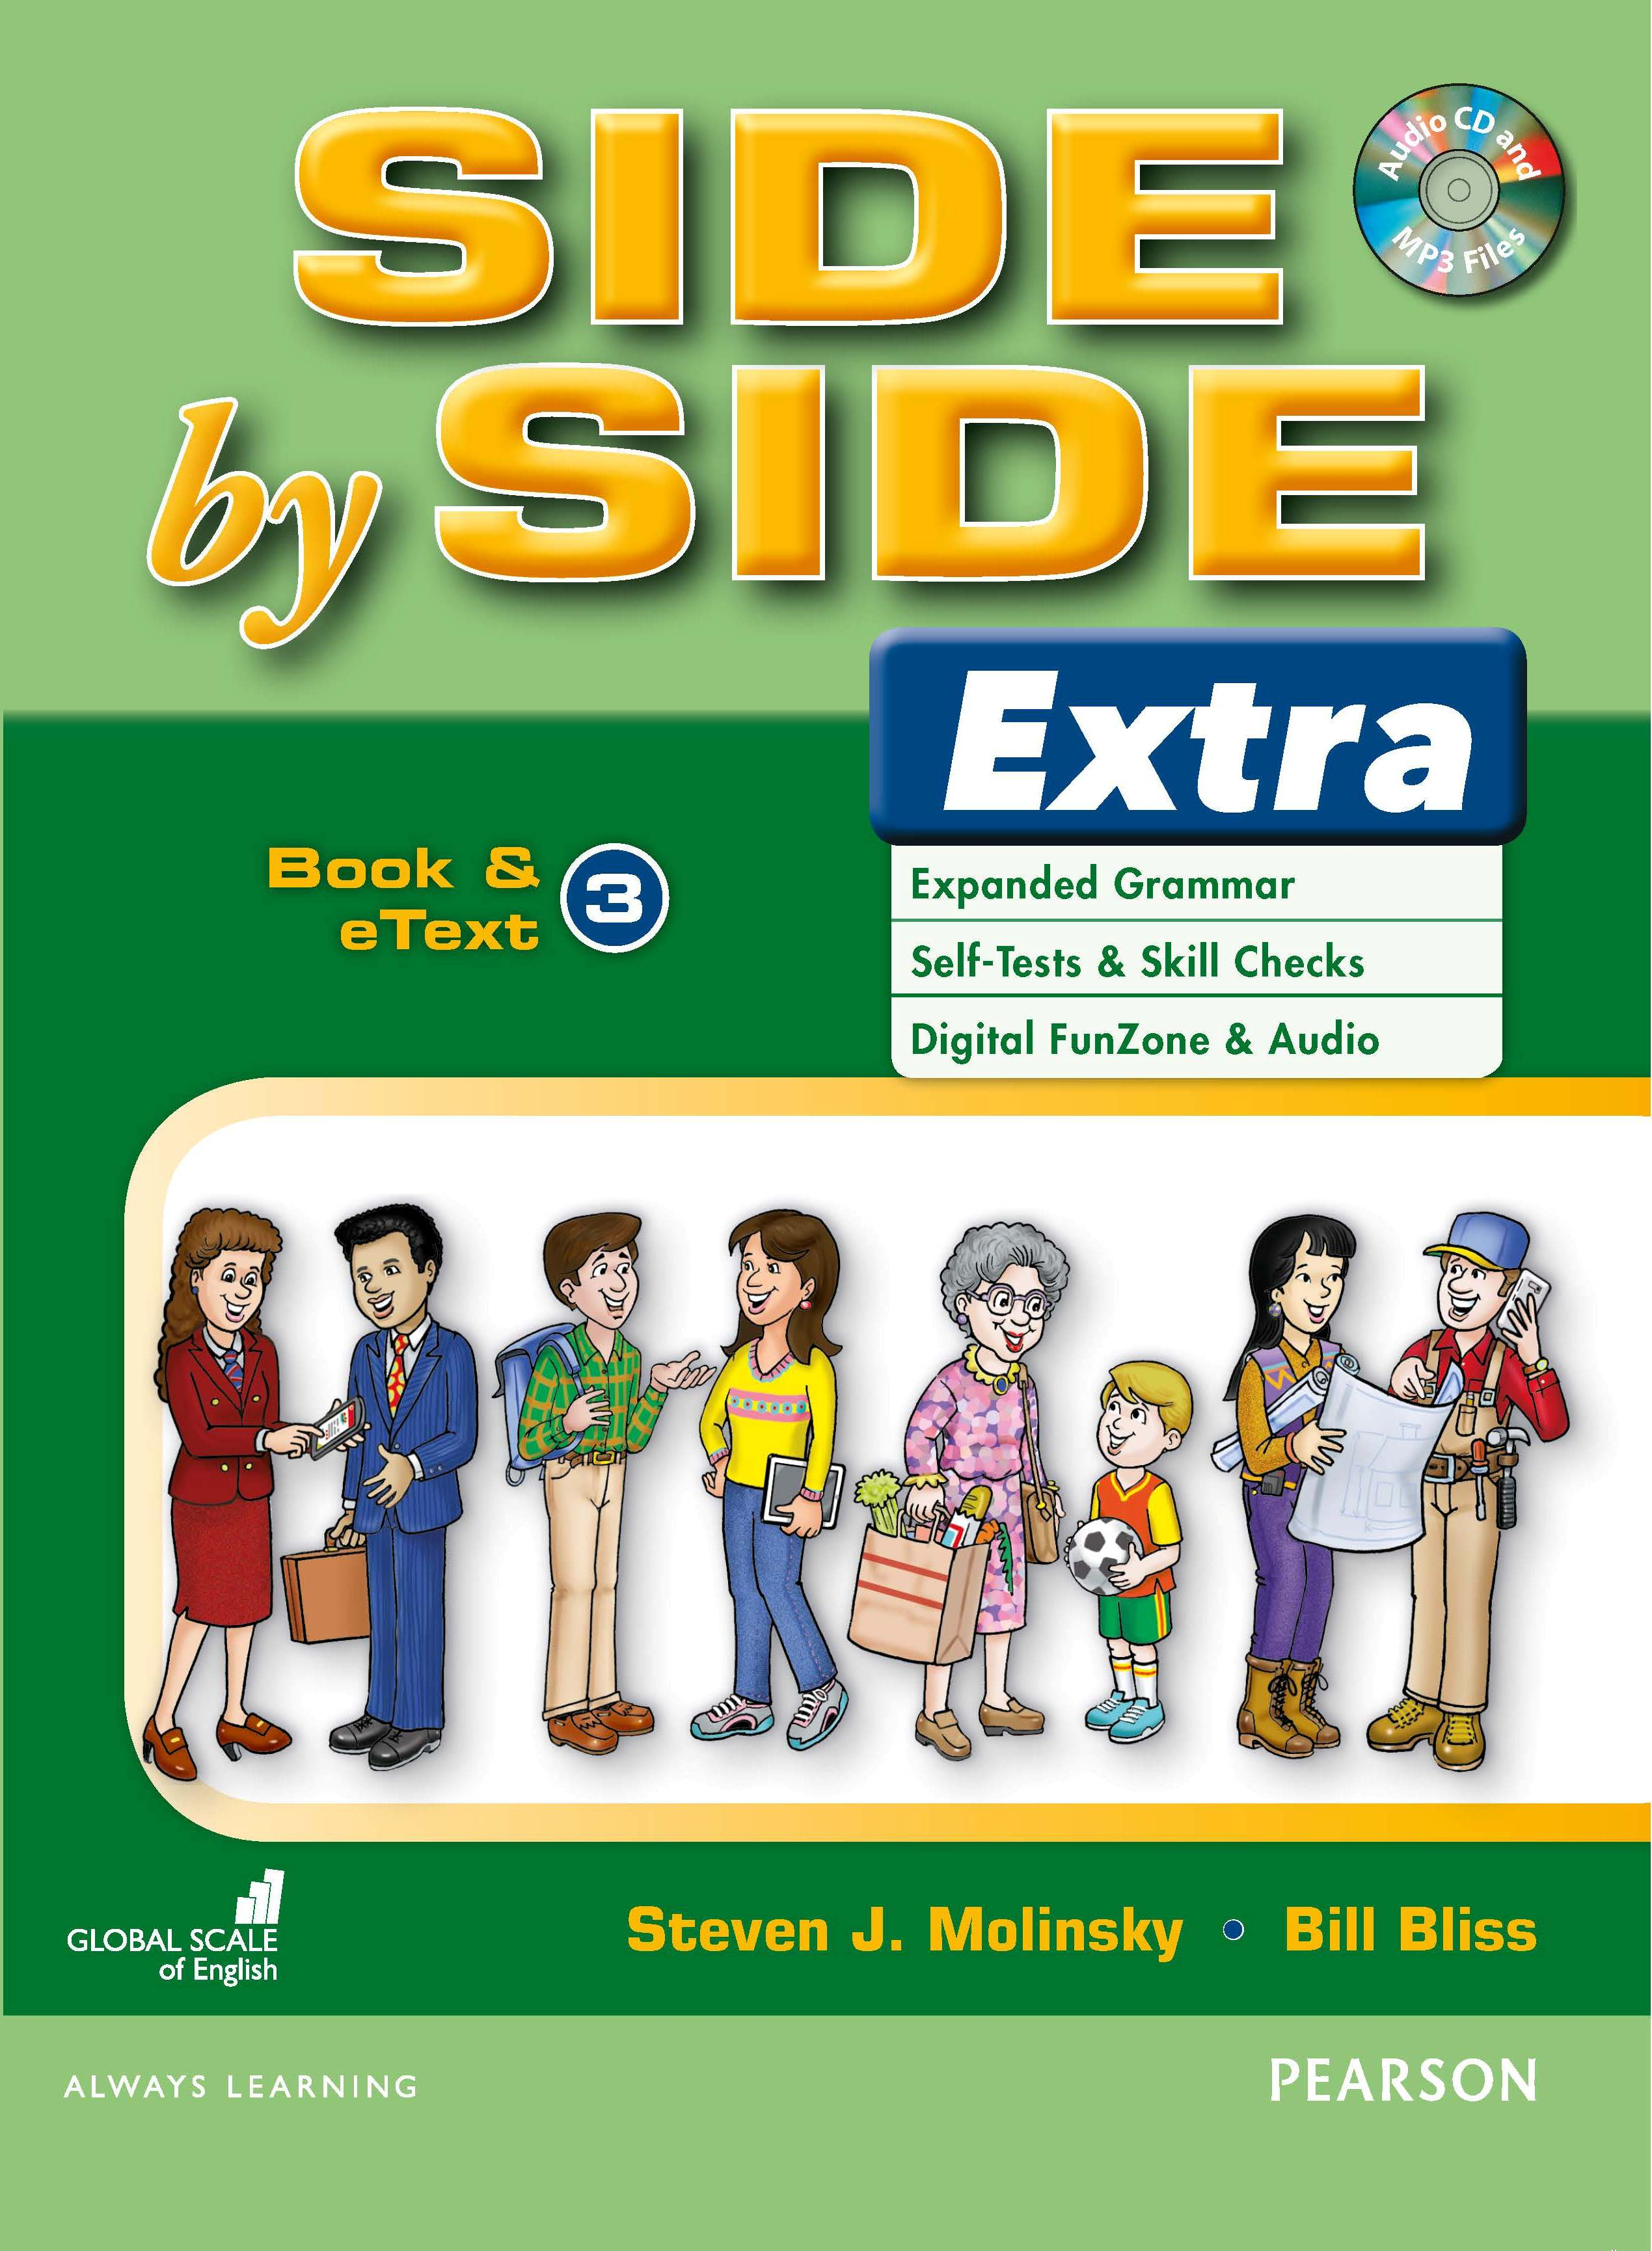 English Course Side by Side Extra Student Book cover Level 3